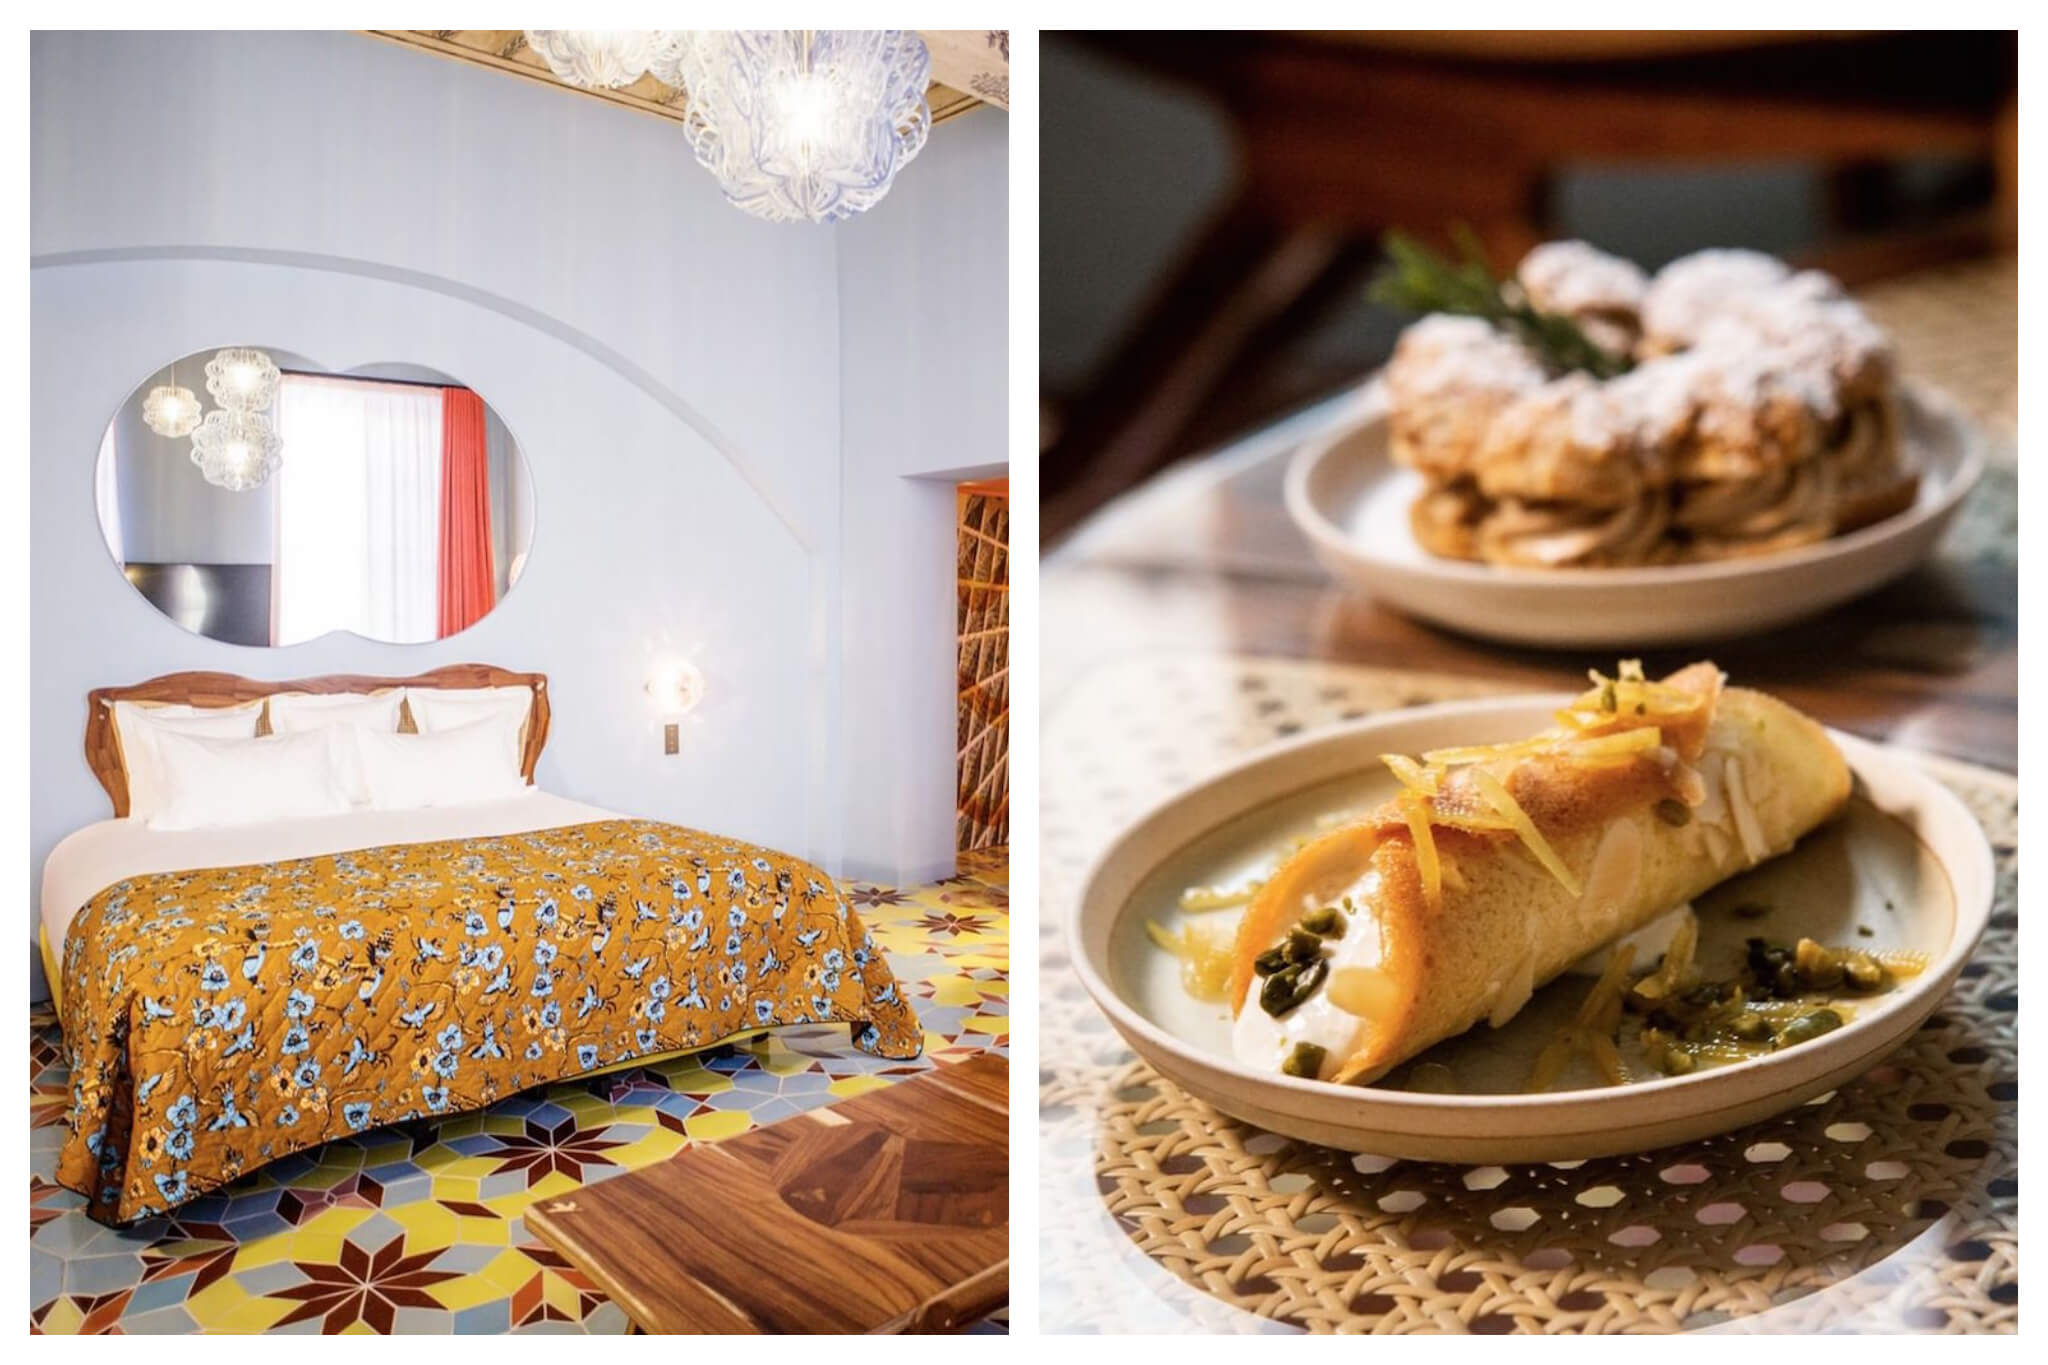 Left: A beautifully decorated room at the L'Arlatan, styled with bright colors and patterns, Right: Inviting plates of food sit atop a table at one of the delicious restaurants at L'Arlatan in Arles.